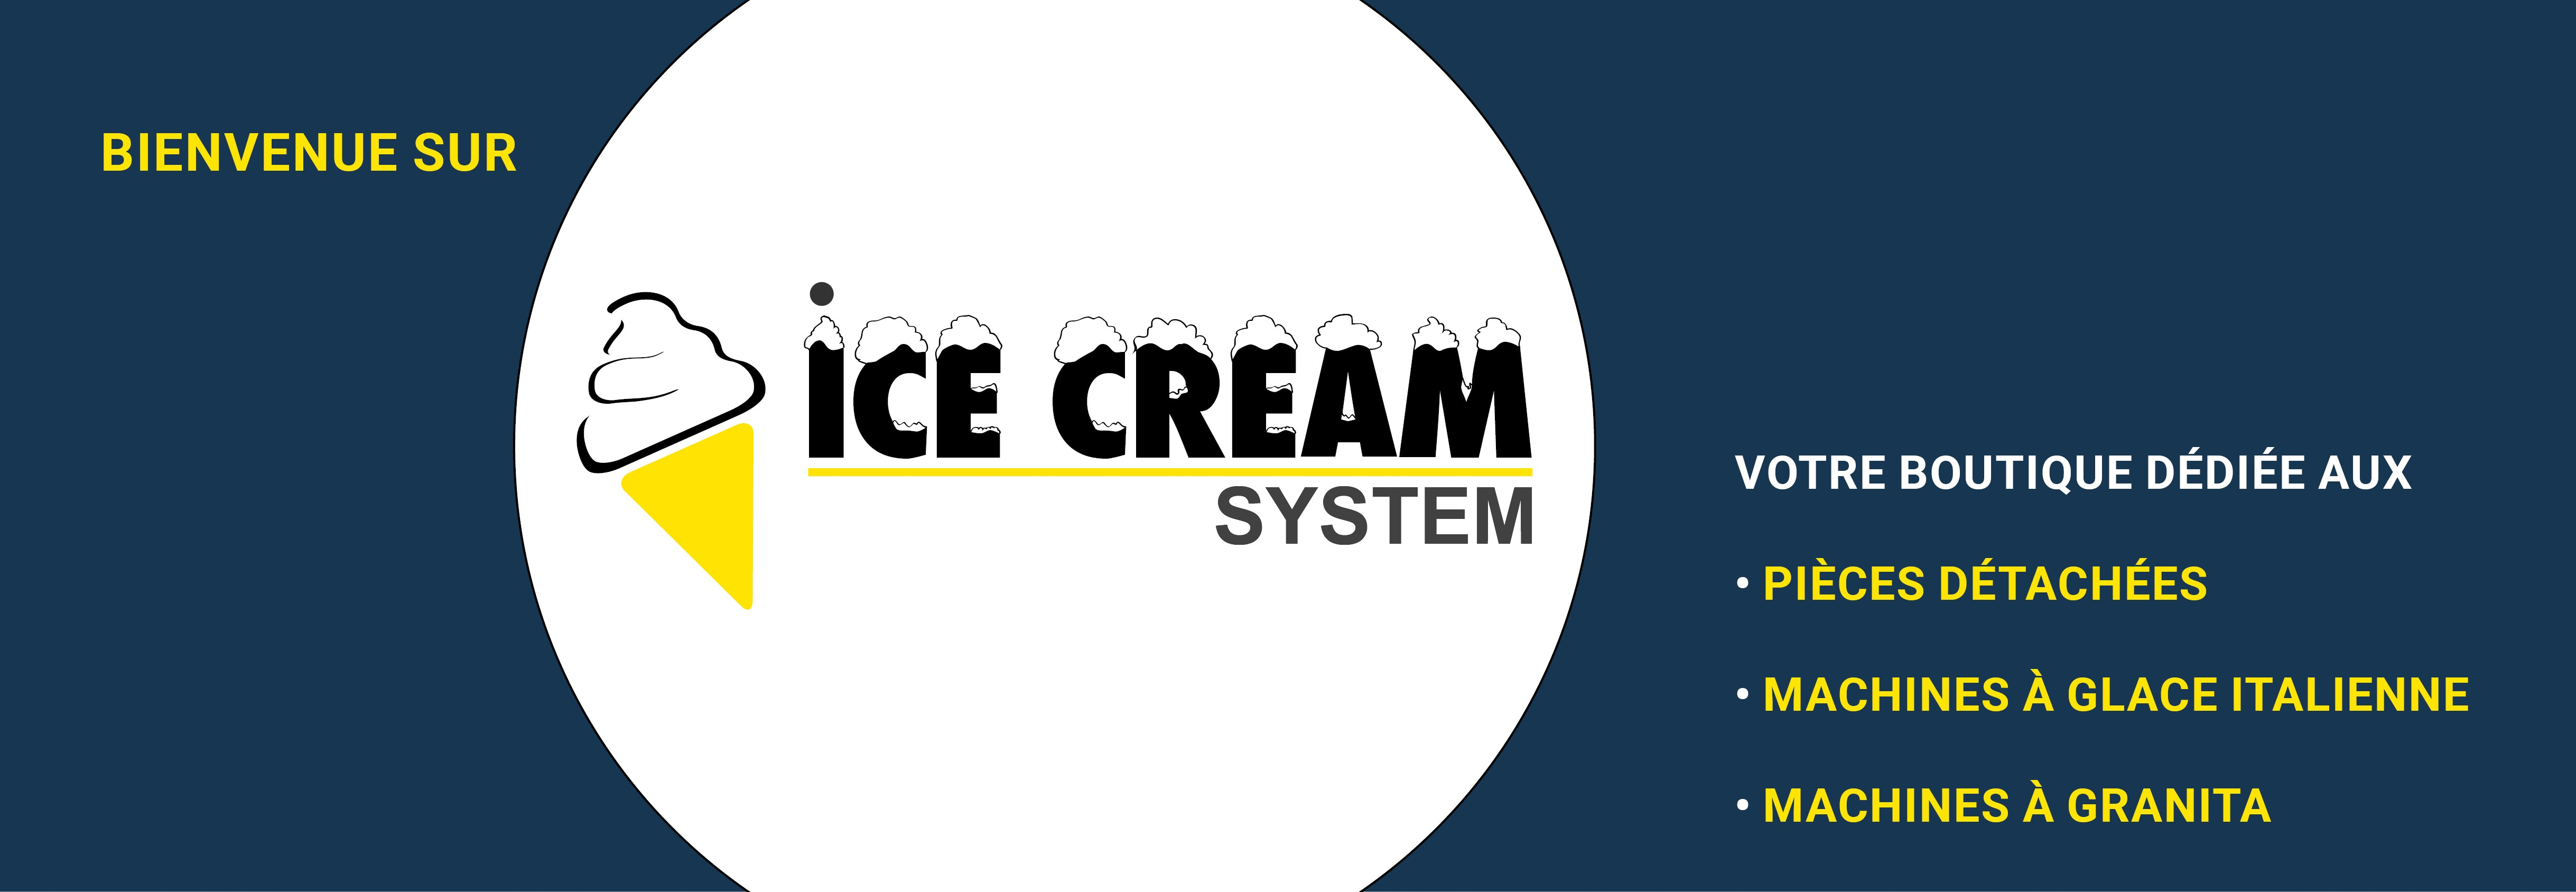 Bienvenue sur Ice Cream System